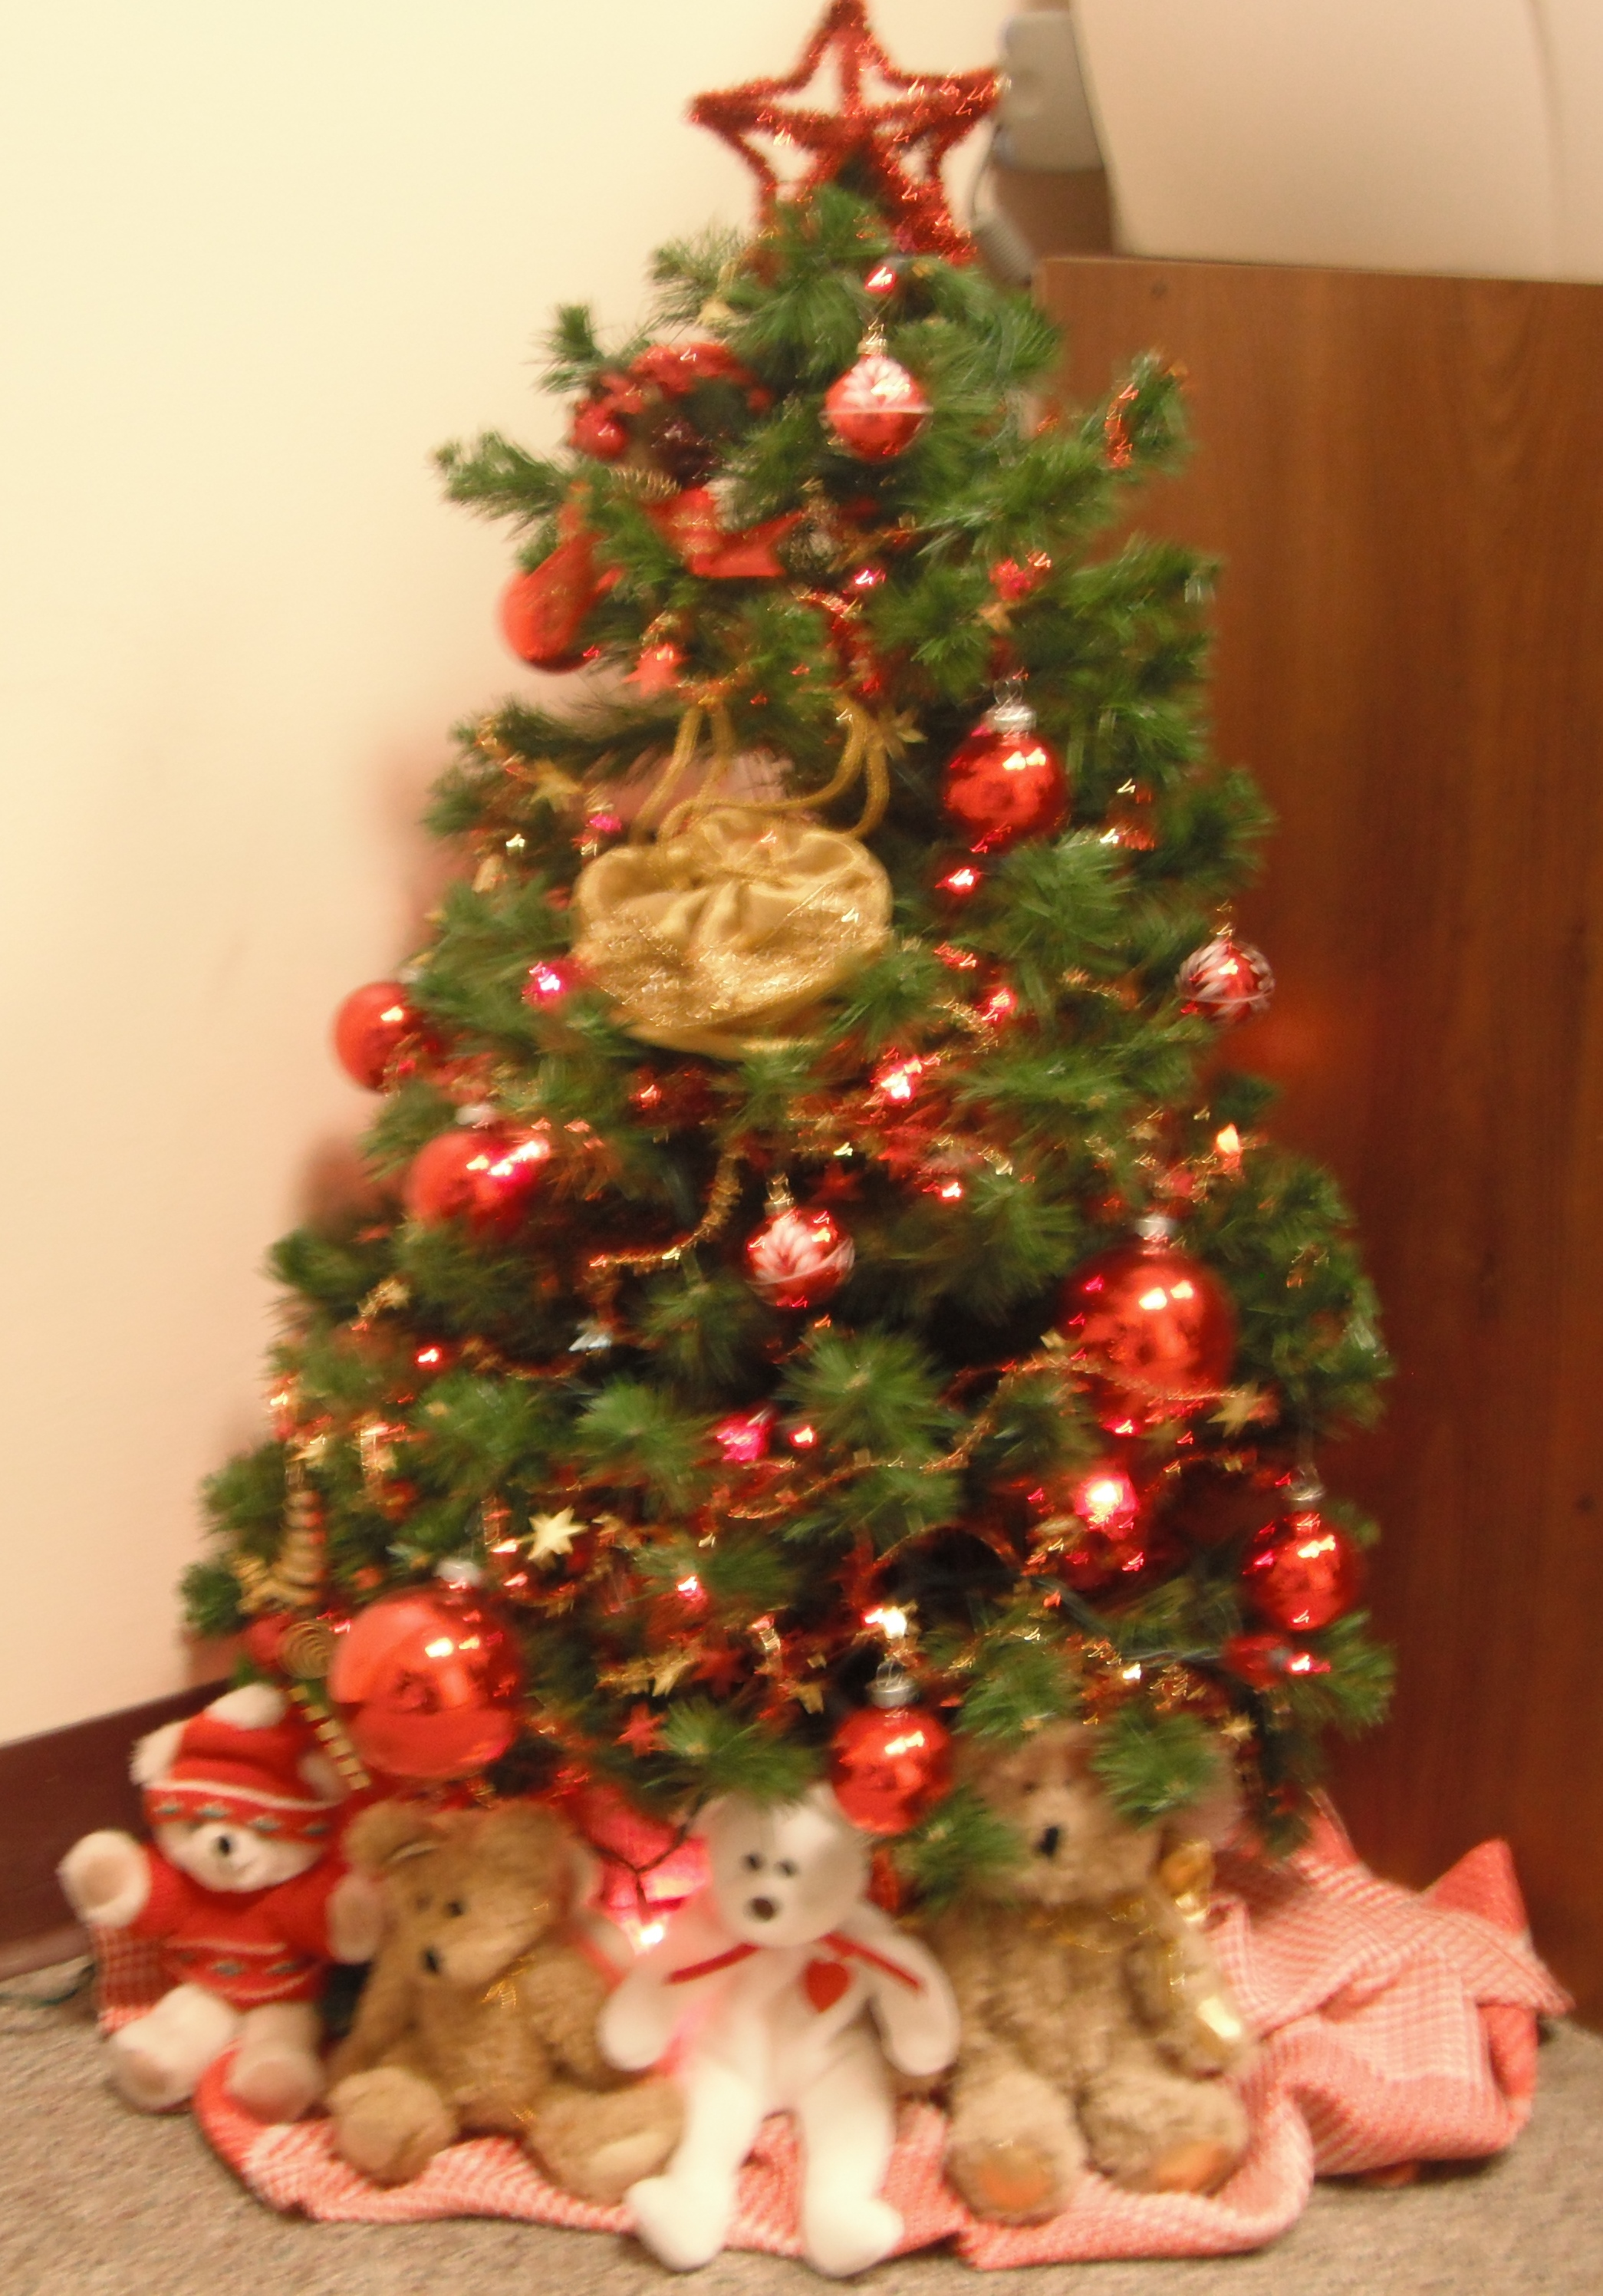 Christmas Tree Decorated With Teddy Bears Teddy Bears Christmas Tree